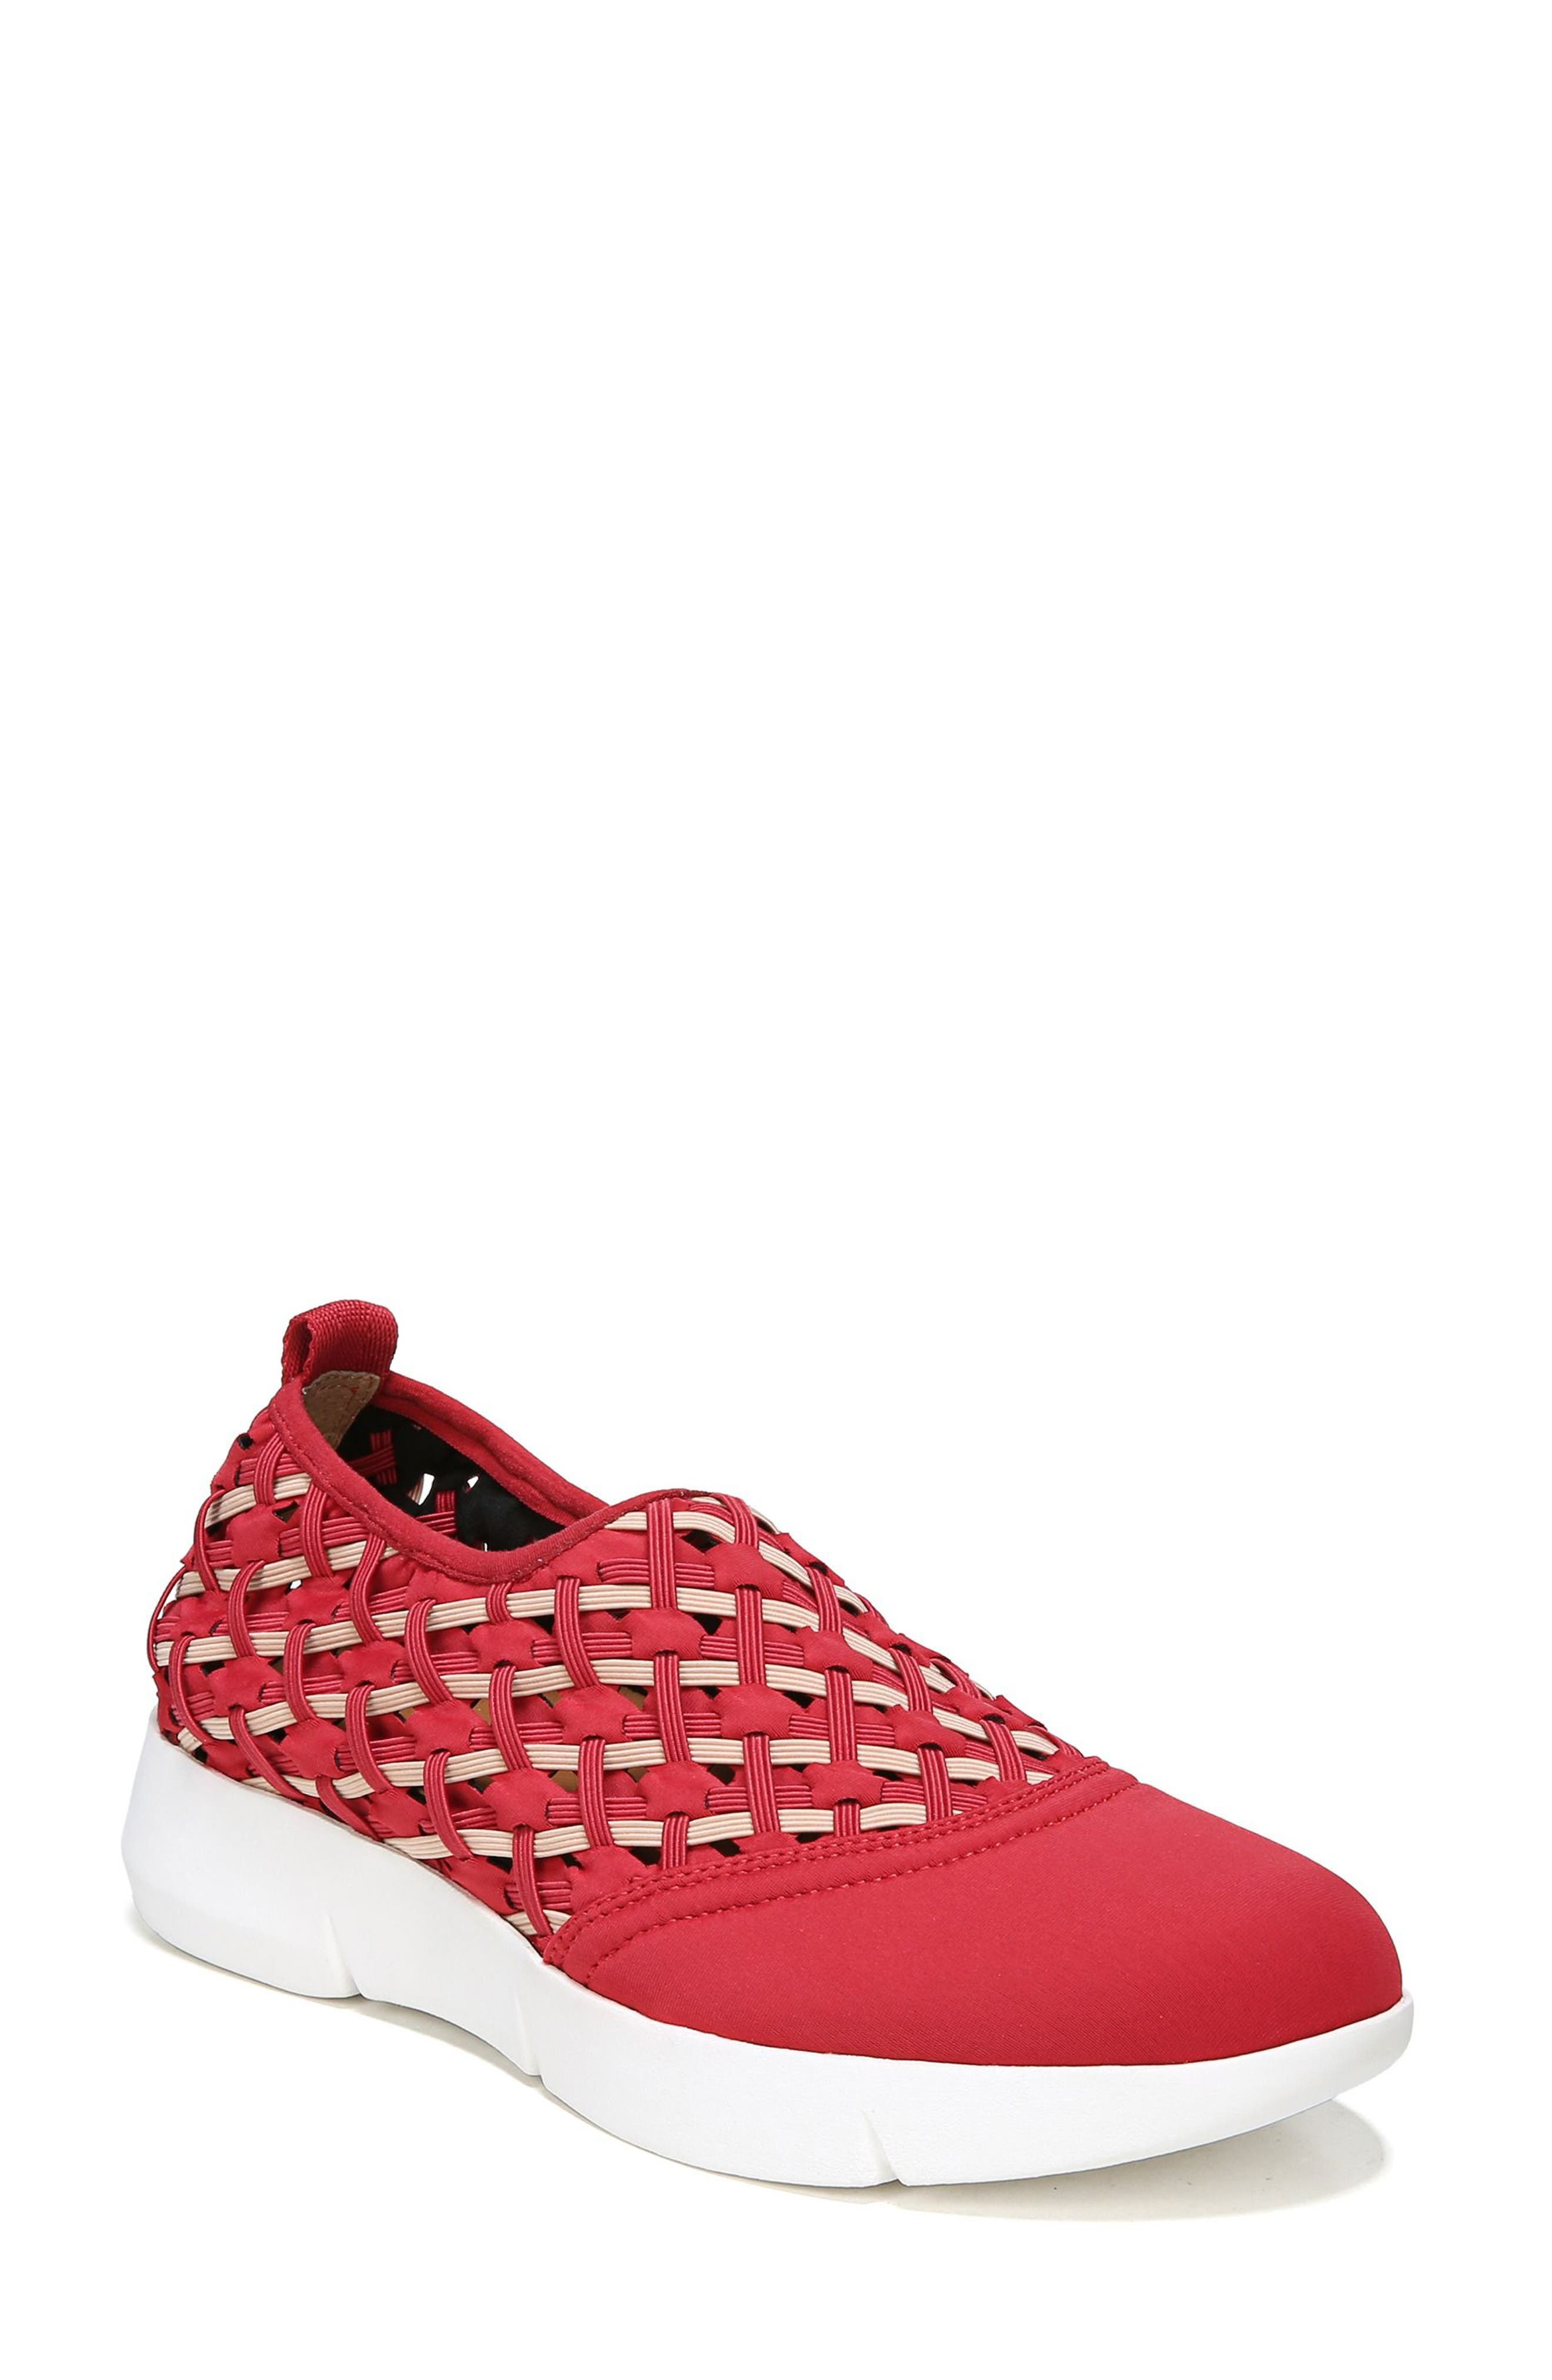 Fallan Woven Slip-On Sneaker,                             Main thumbnail 1, color,                             Deep Red Leather